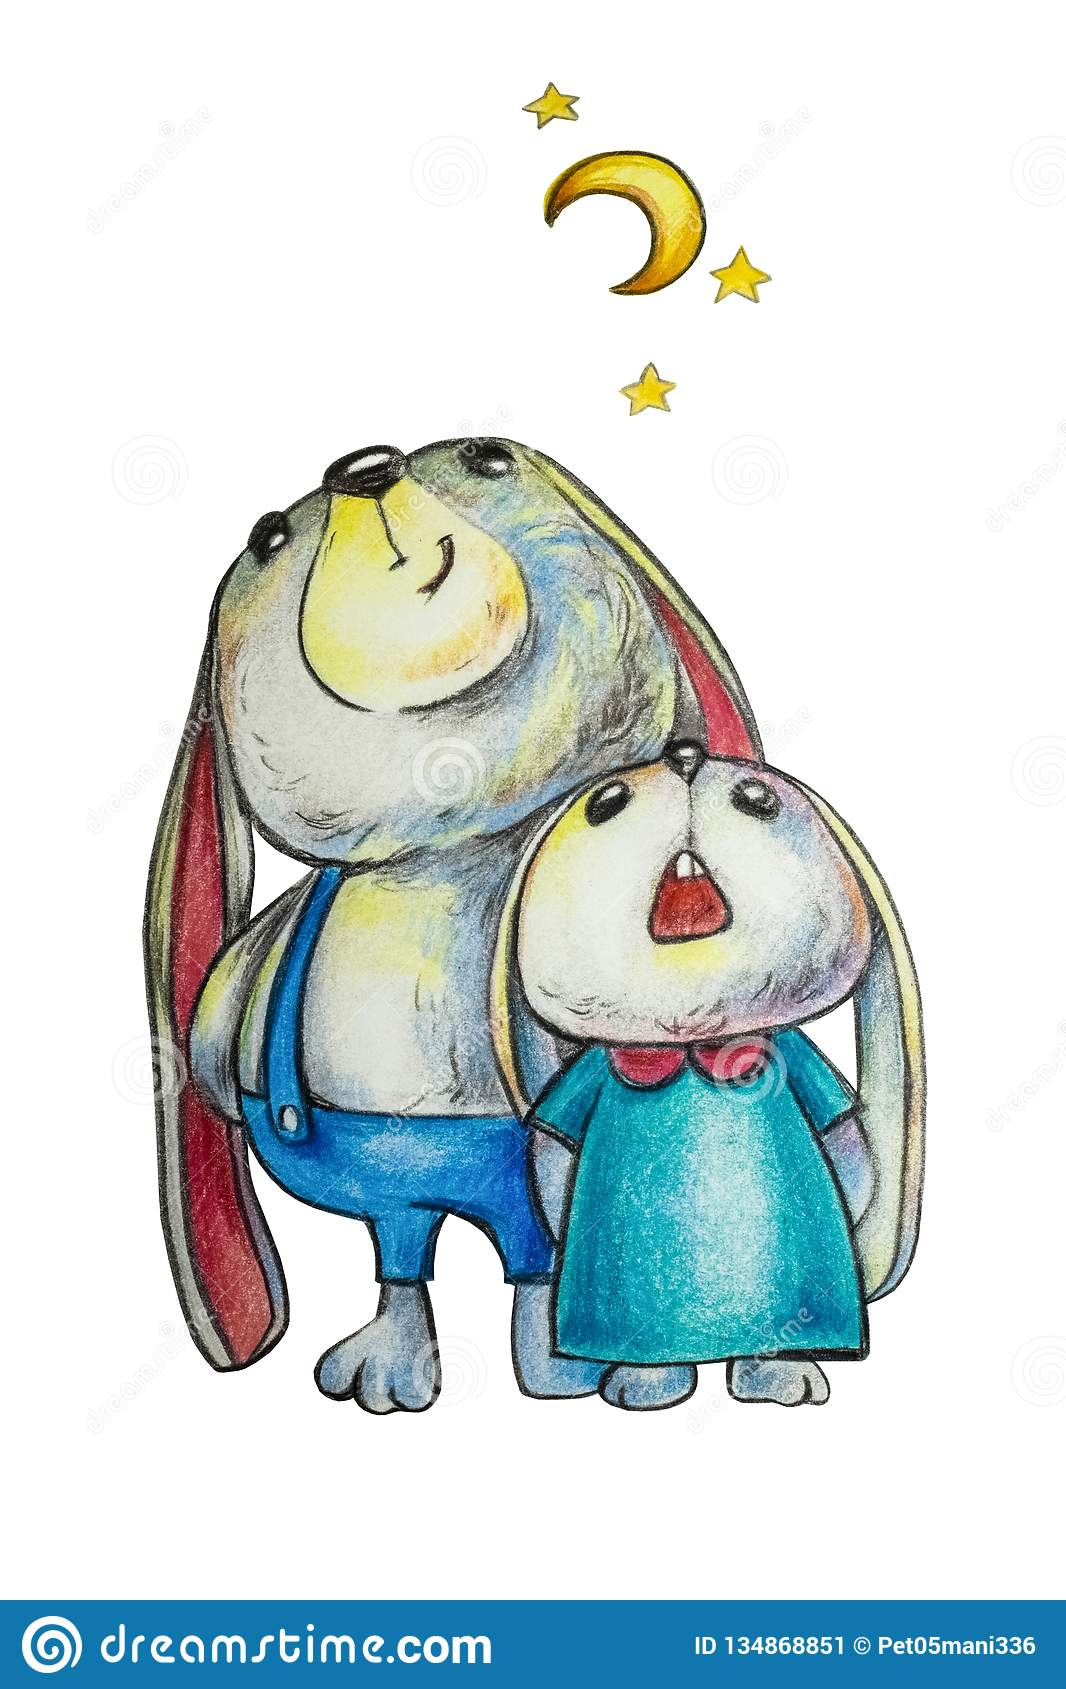 Cartoon hares, dad and daughter look at the starry sky and the moon